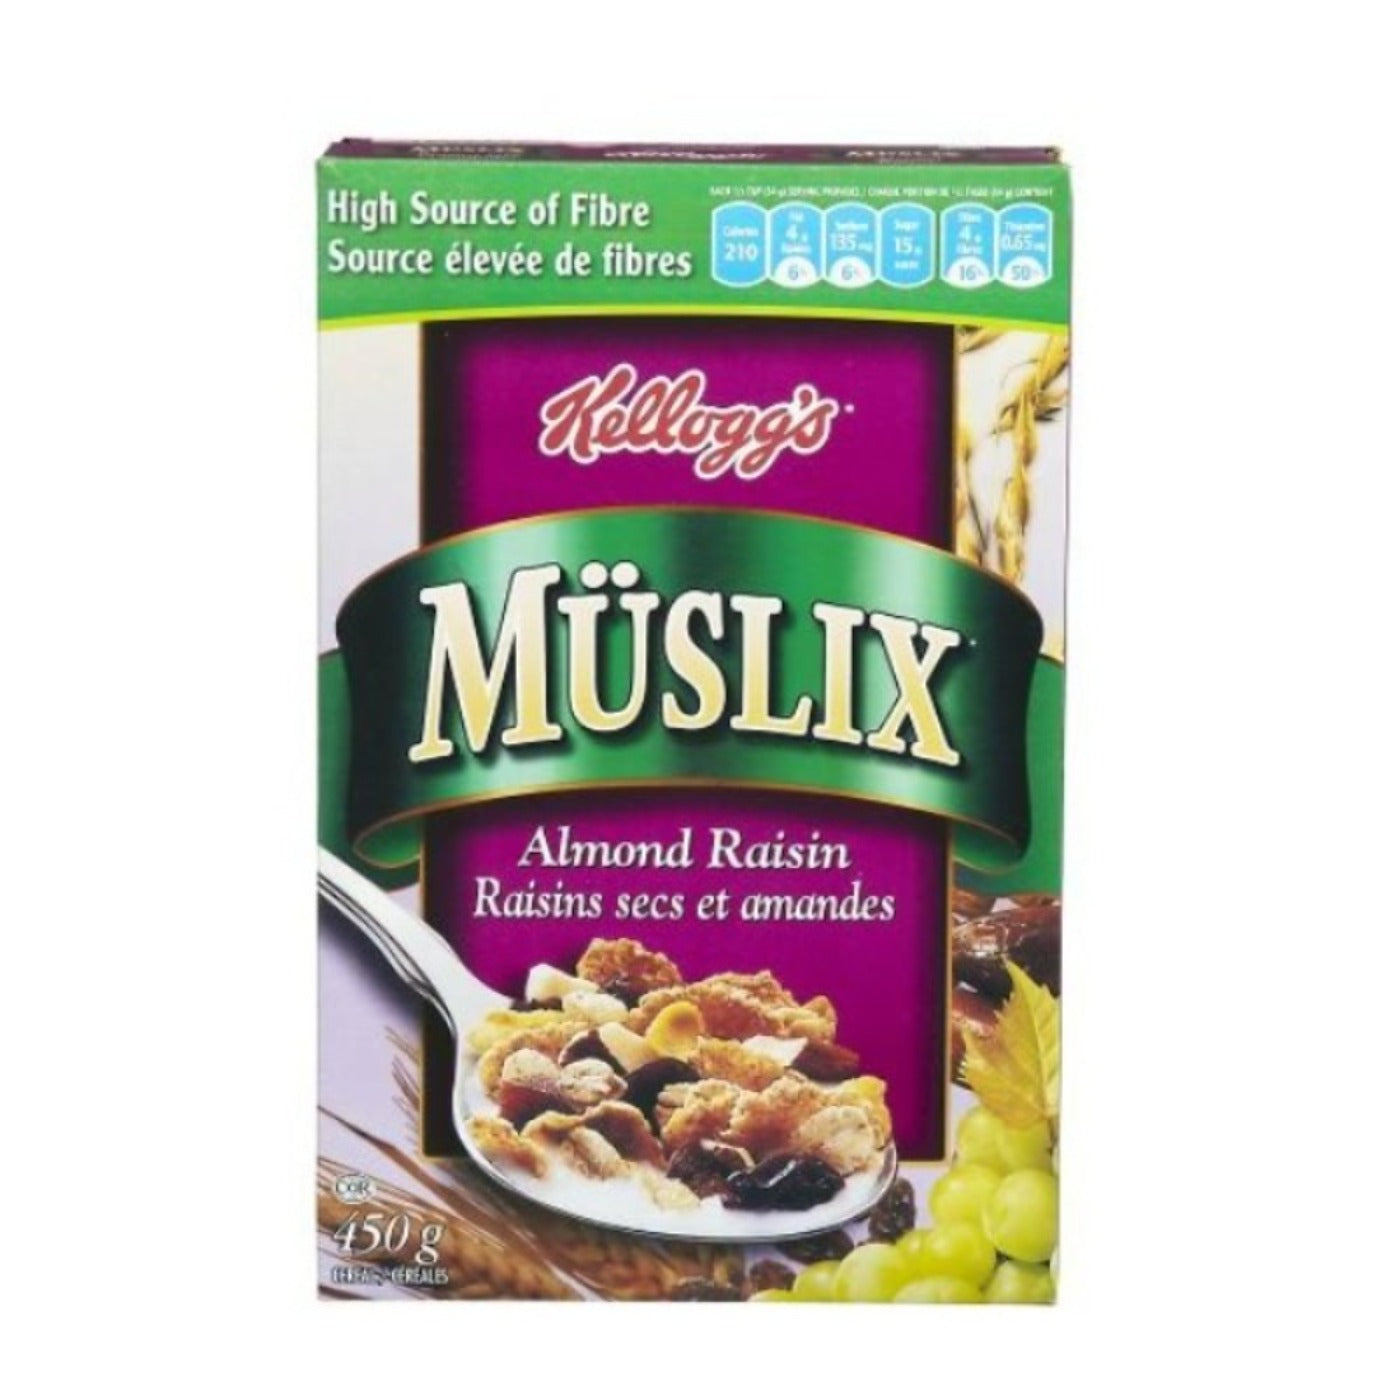 Kellogg's Müslix Almond Raisin Cereal